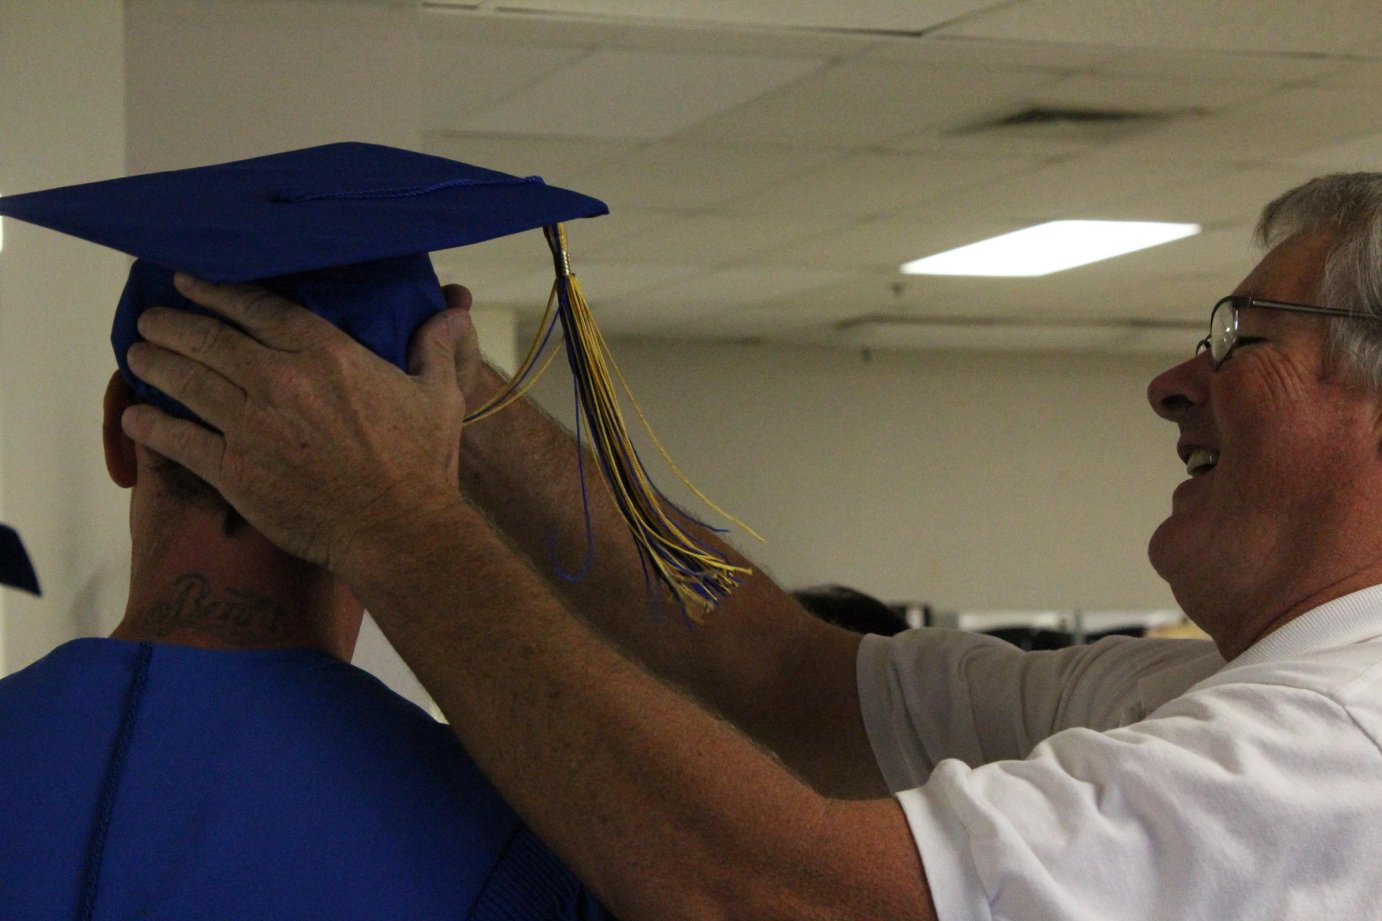 Each graduate briefly wore a mortar board with a tassel so they could be photographed at the ceremony. The inmates will be given a copy of their photo to send home and another to keep in their possession. (Credit Nadya Faulx)